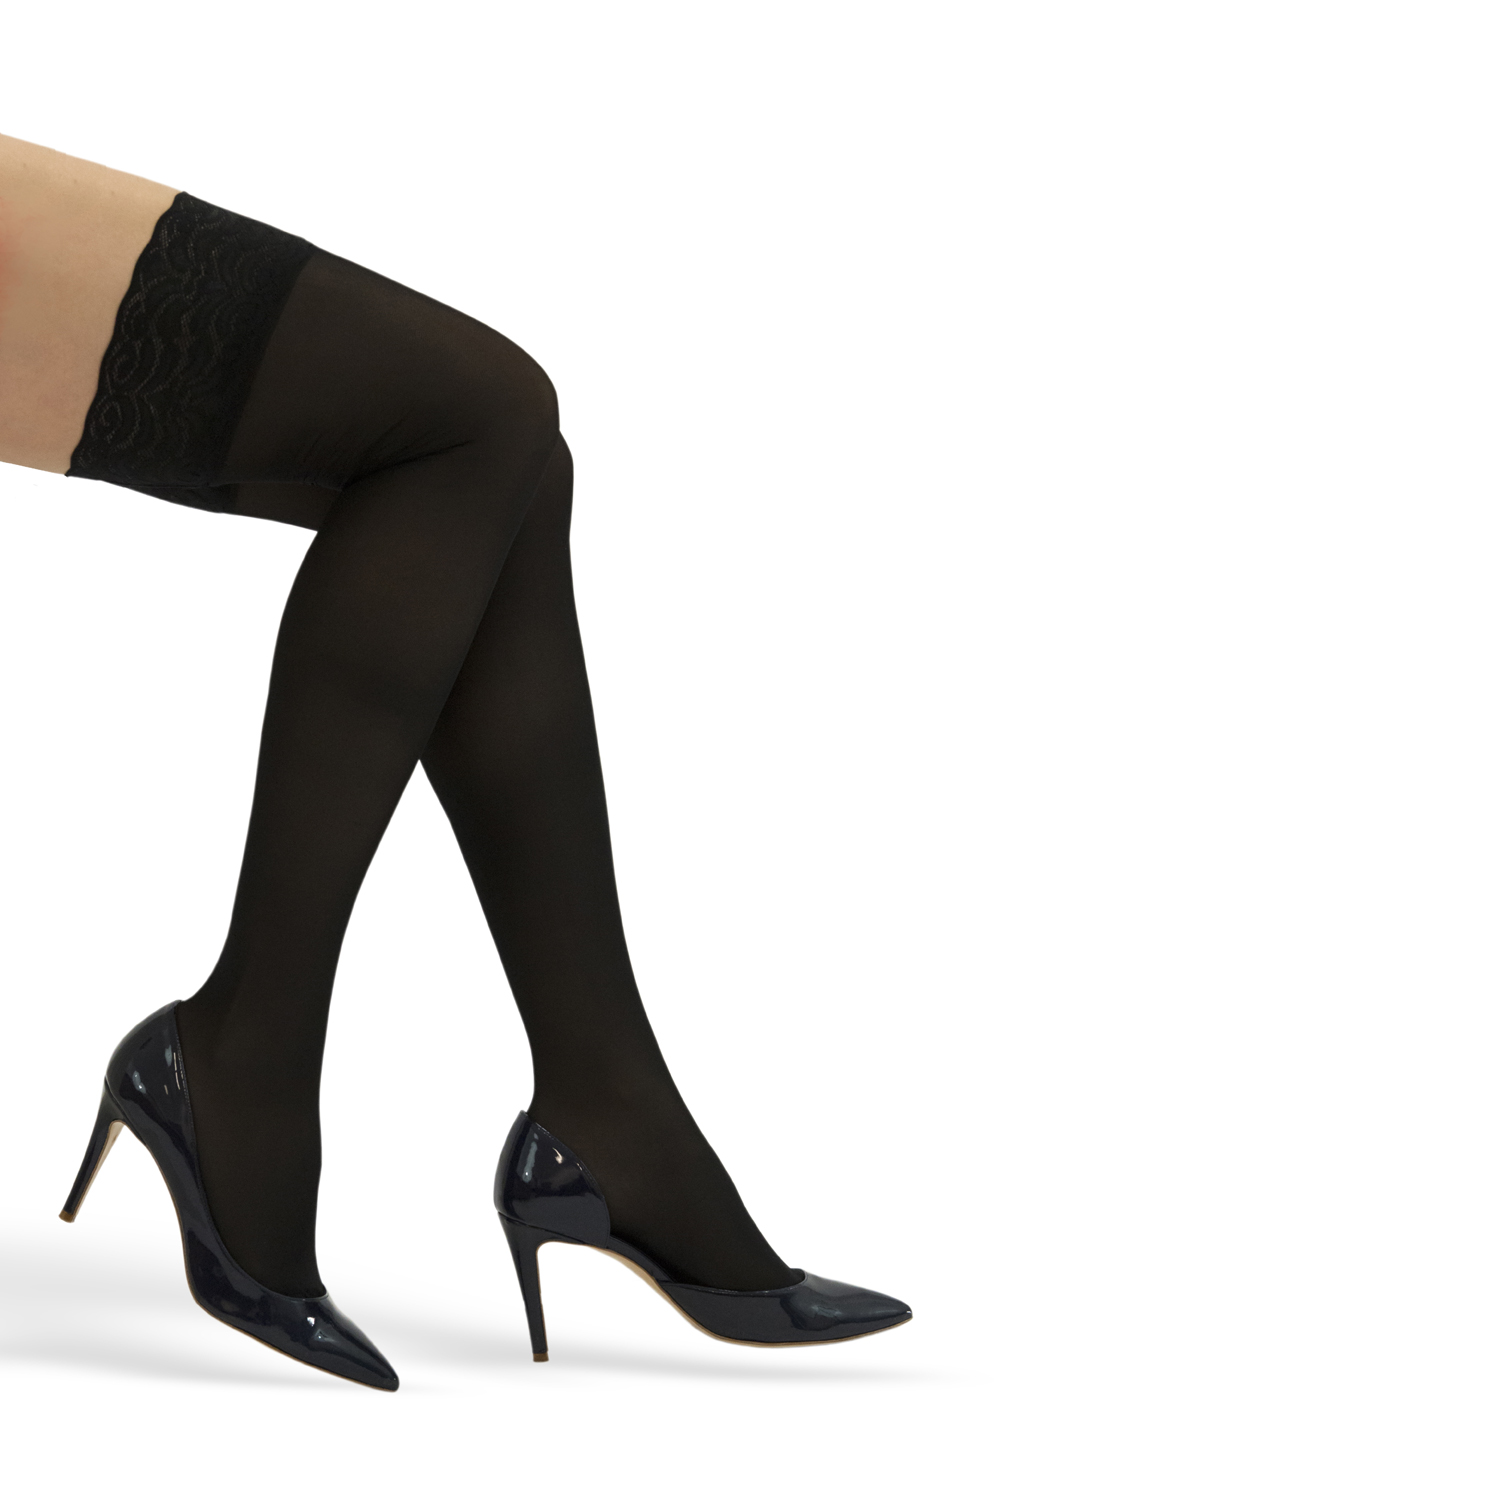 GABRIALLA Style H-40 Lace Top Thigh Highs w/ Silicone Band